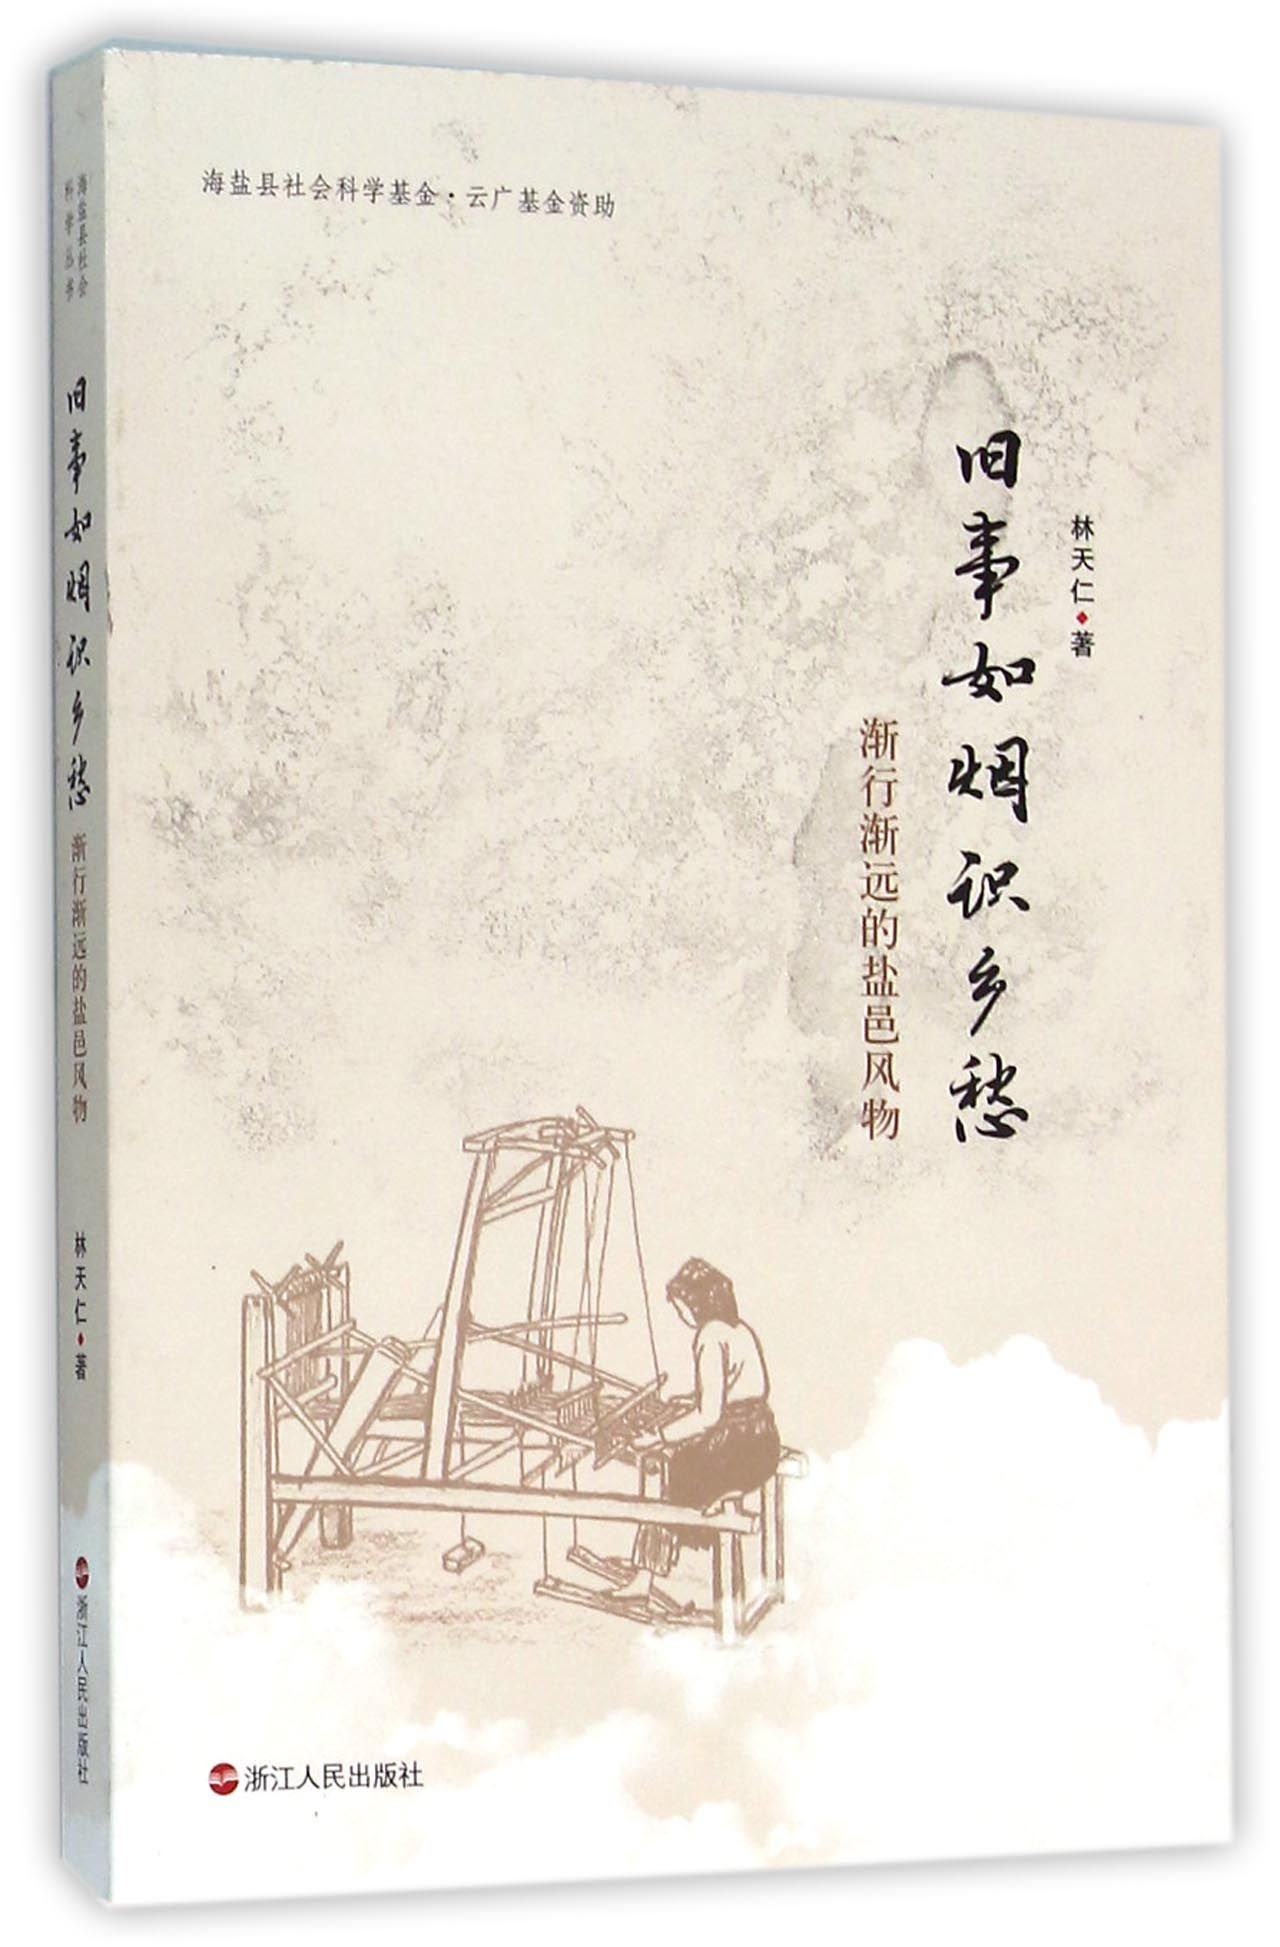 Download Smoke-like Memories and Nostalgia (Chinese Edition) ebook